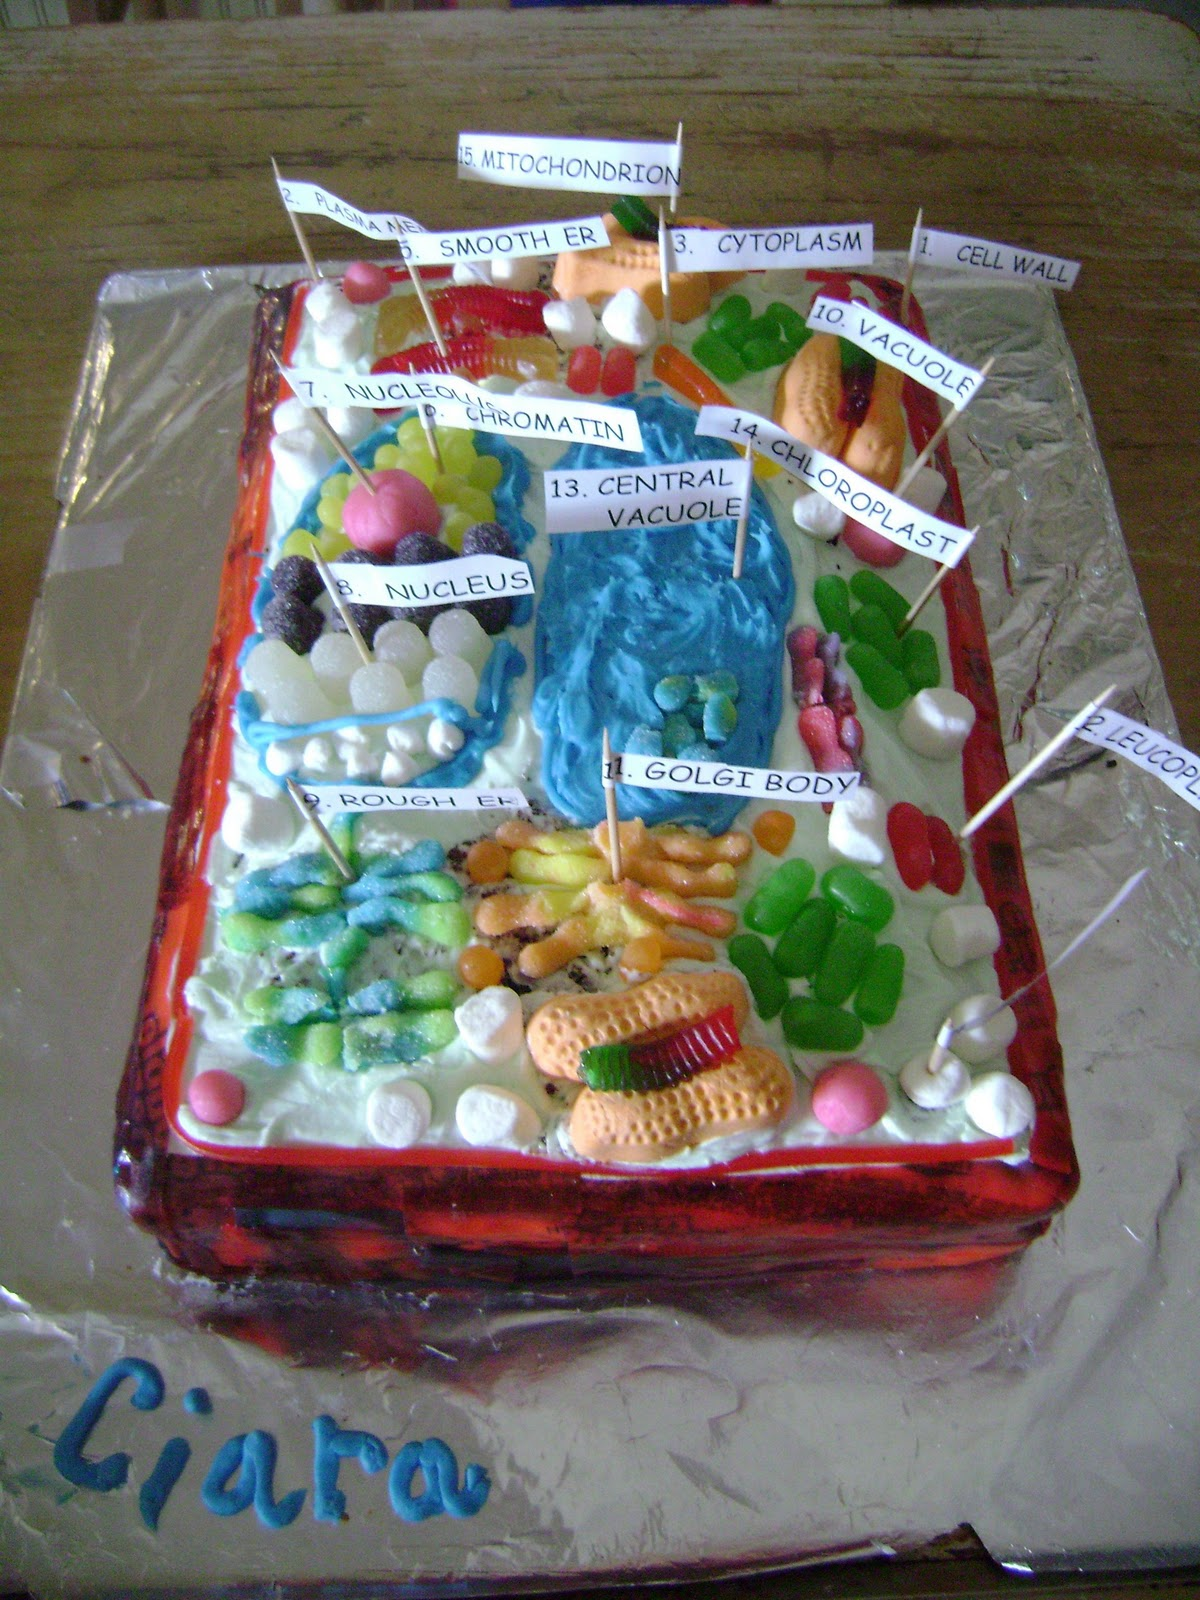 3D Plant Cell model Cake http://burganfamily.blogspot.com/2010/10/edible-cell-project.html